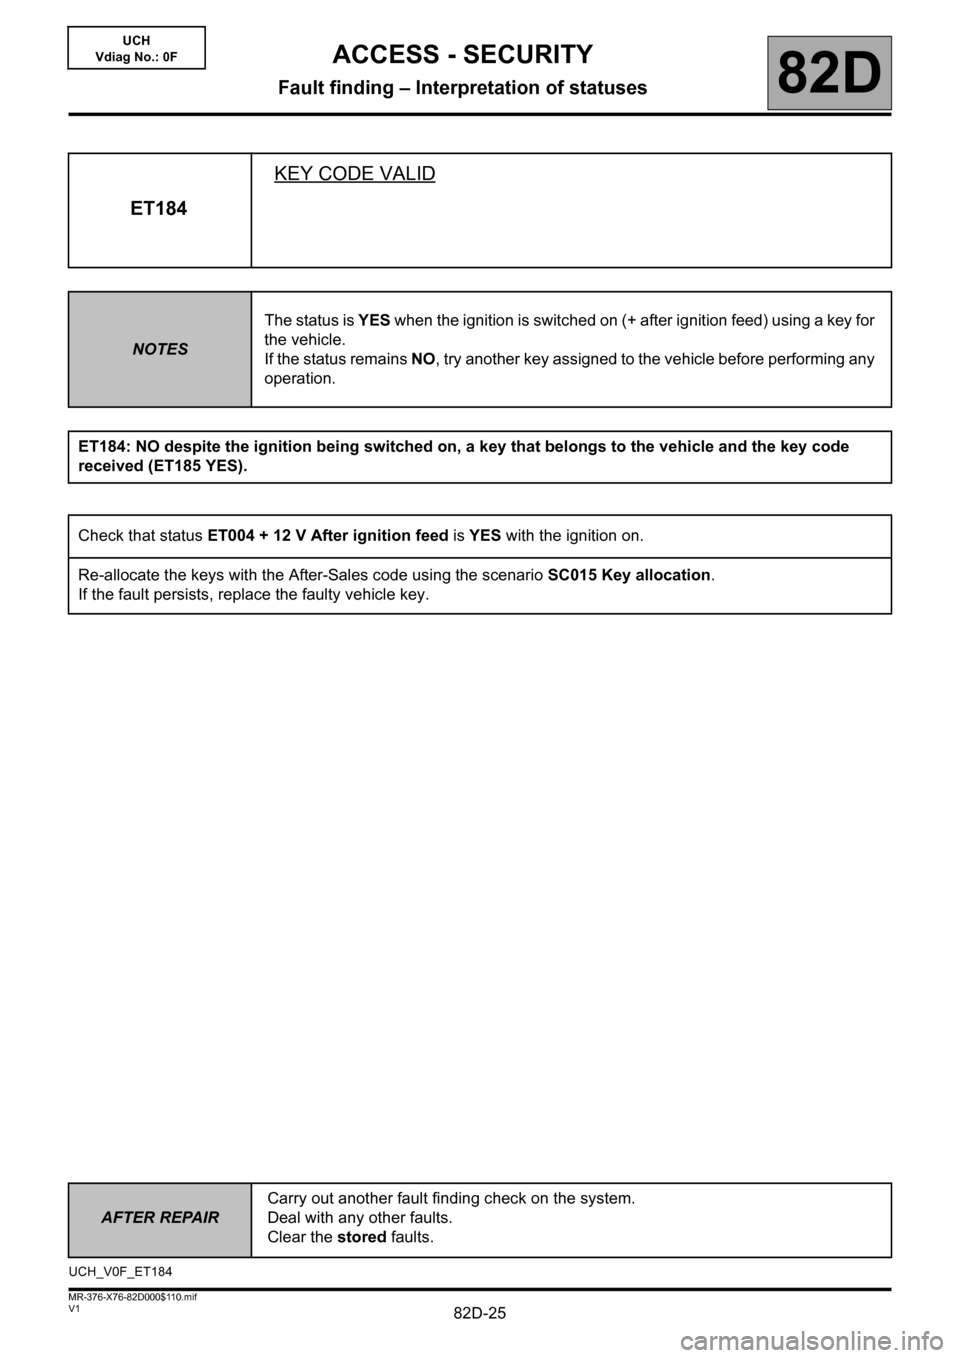 RENAULT KANGOO 2013 X61 / 2.G Access Security Workshop Manual, Page 25